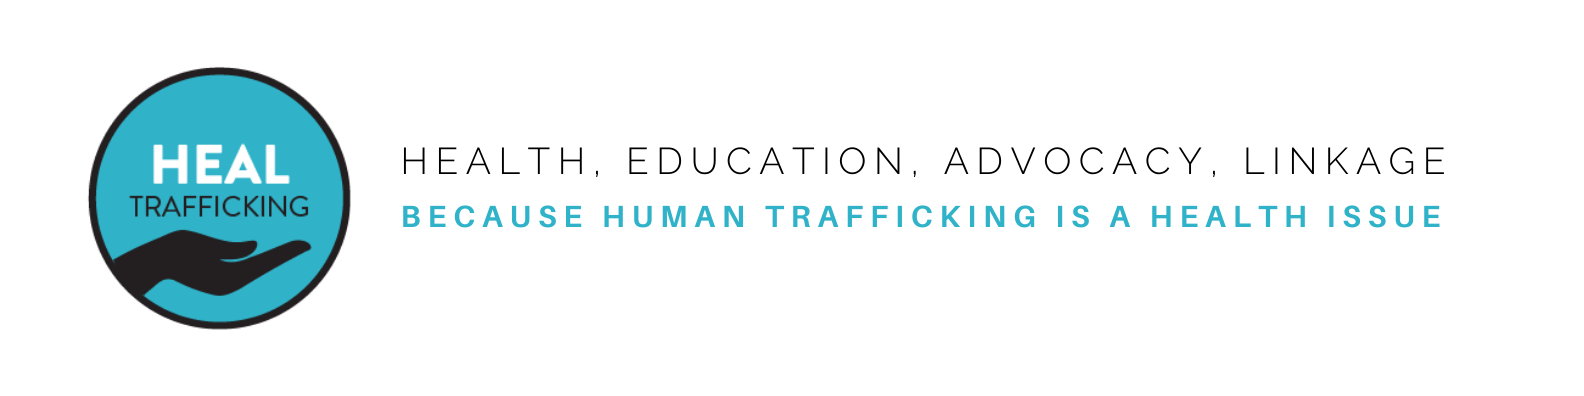 HEAL Trafficking: Health, Education, Advocacy, Linkage - Because human trafficking is a public health issue